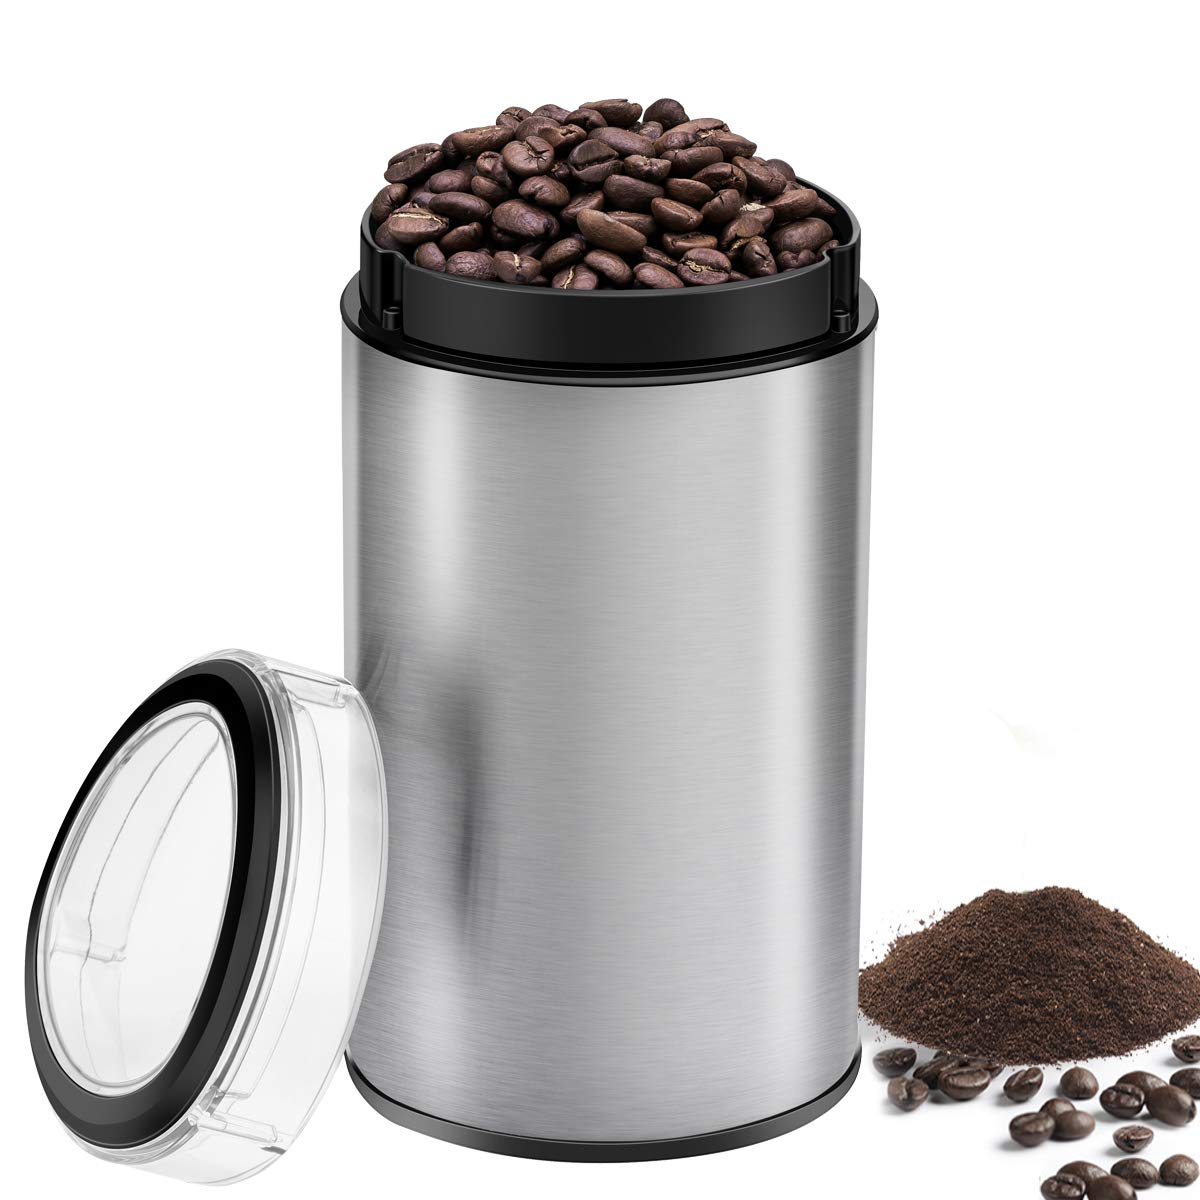 Coffee Mill Grinder 60G, Keemo Coffee Bean Grinder Electric 12 Cup, Fast Fine Home Blade Coffee Grinder Brushed Stainless Steel 150W for Coffee Beans Spices Nuts and Grains